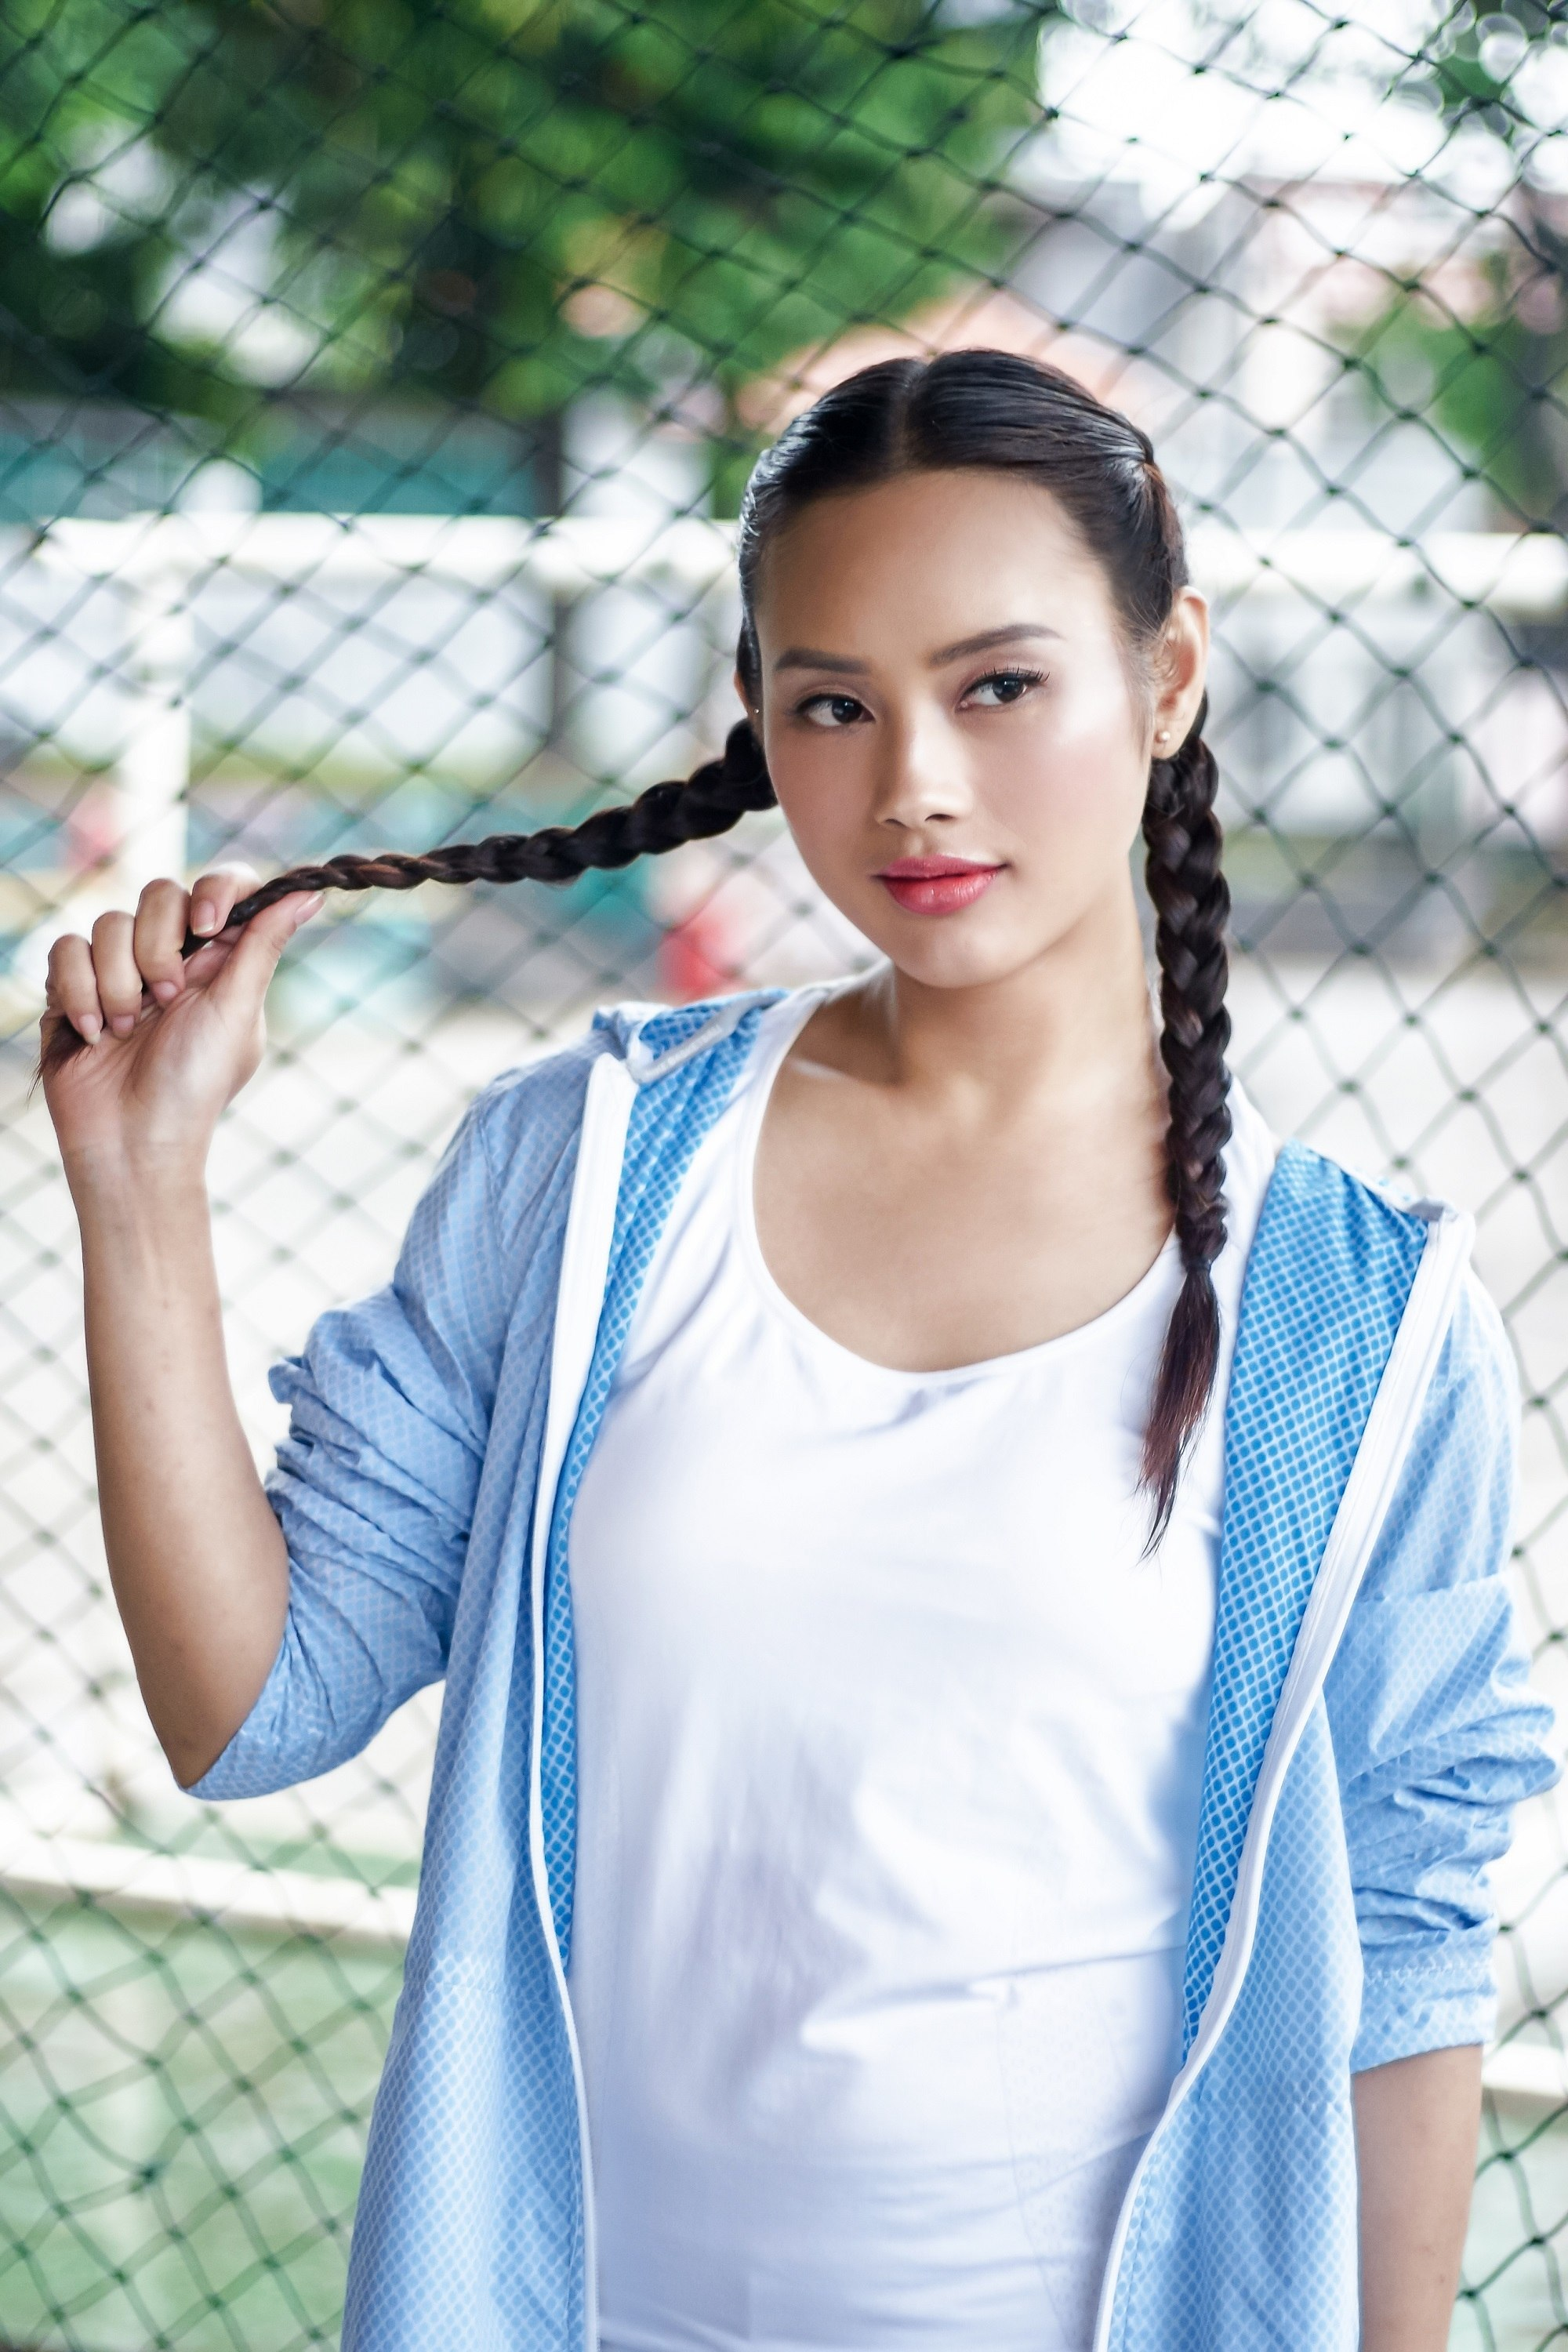 Easy commuter-friendly hairstyles: Asian woman with long black hair in boxer braid wearing a blue sweater outdoors